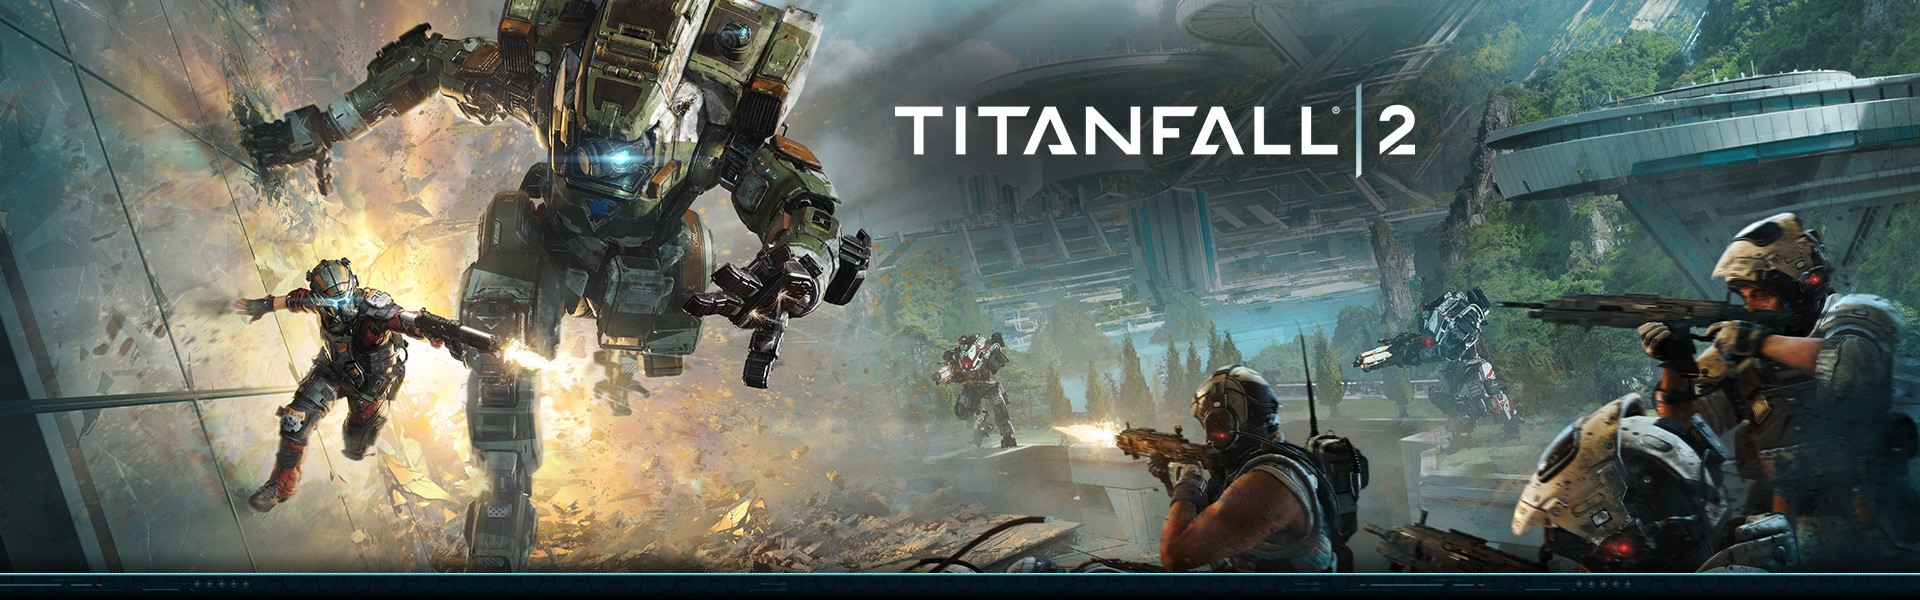 Titanfall 2 Deluxe Edition + Ответ на секртеку